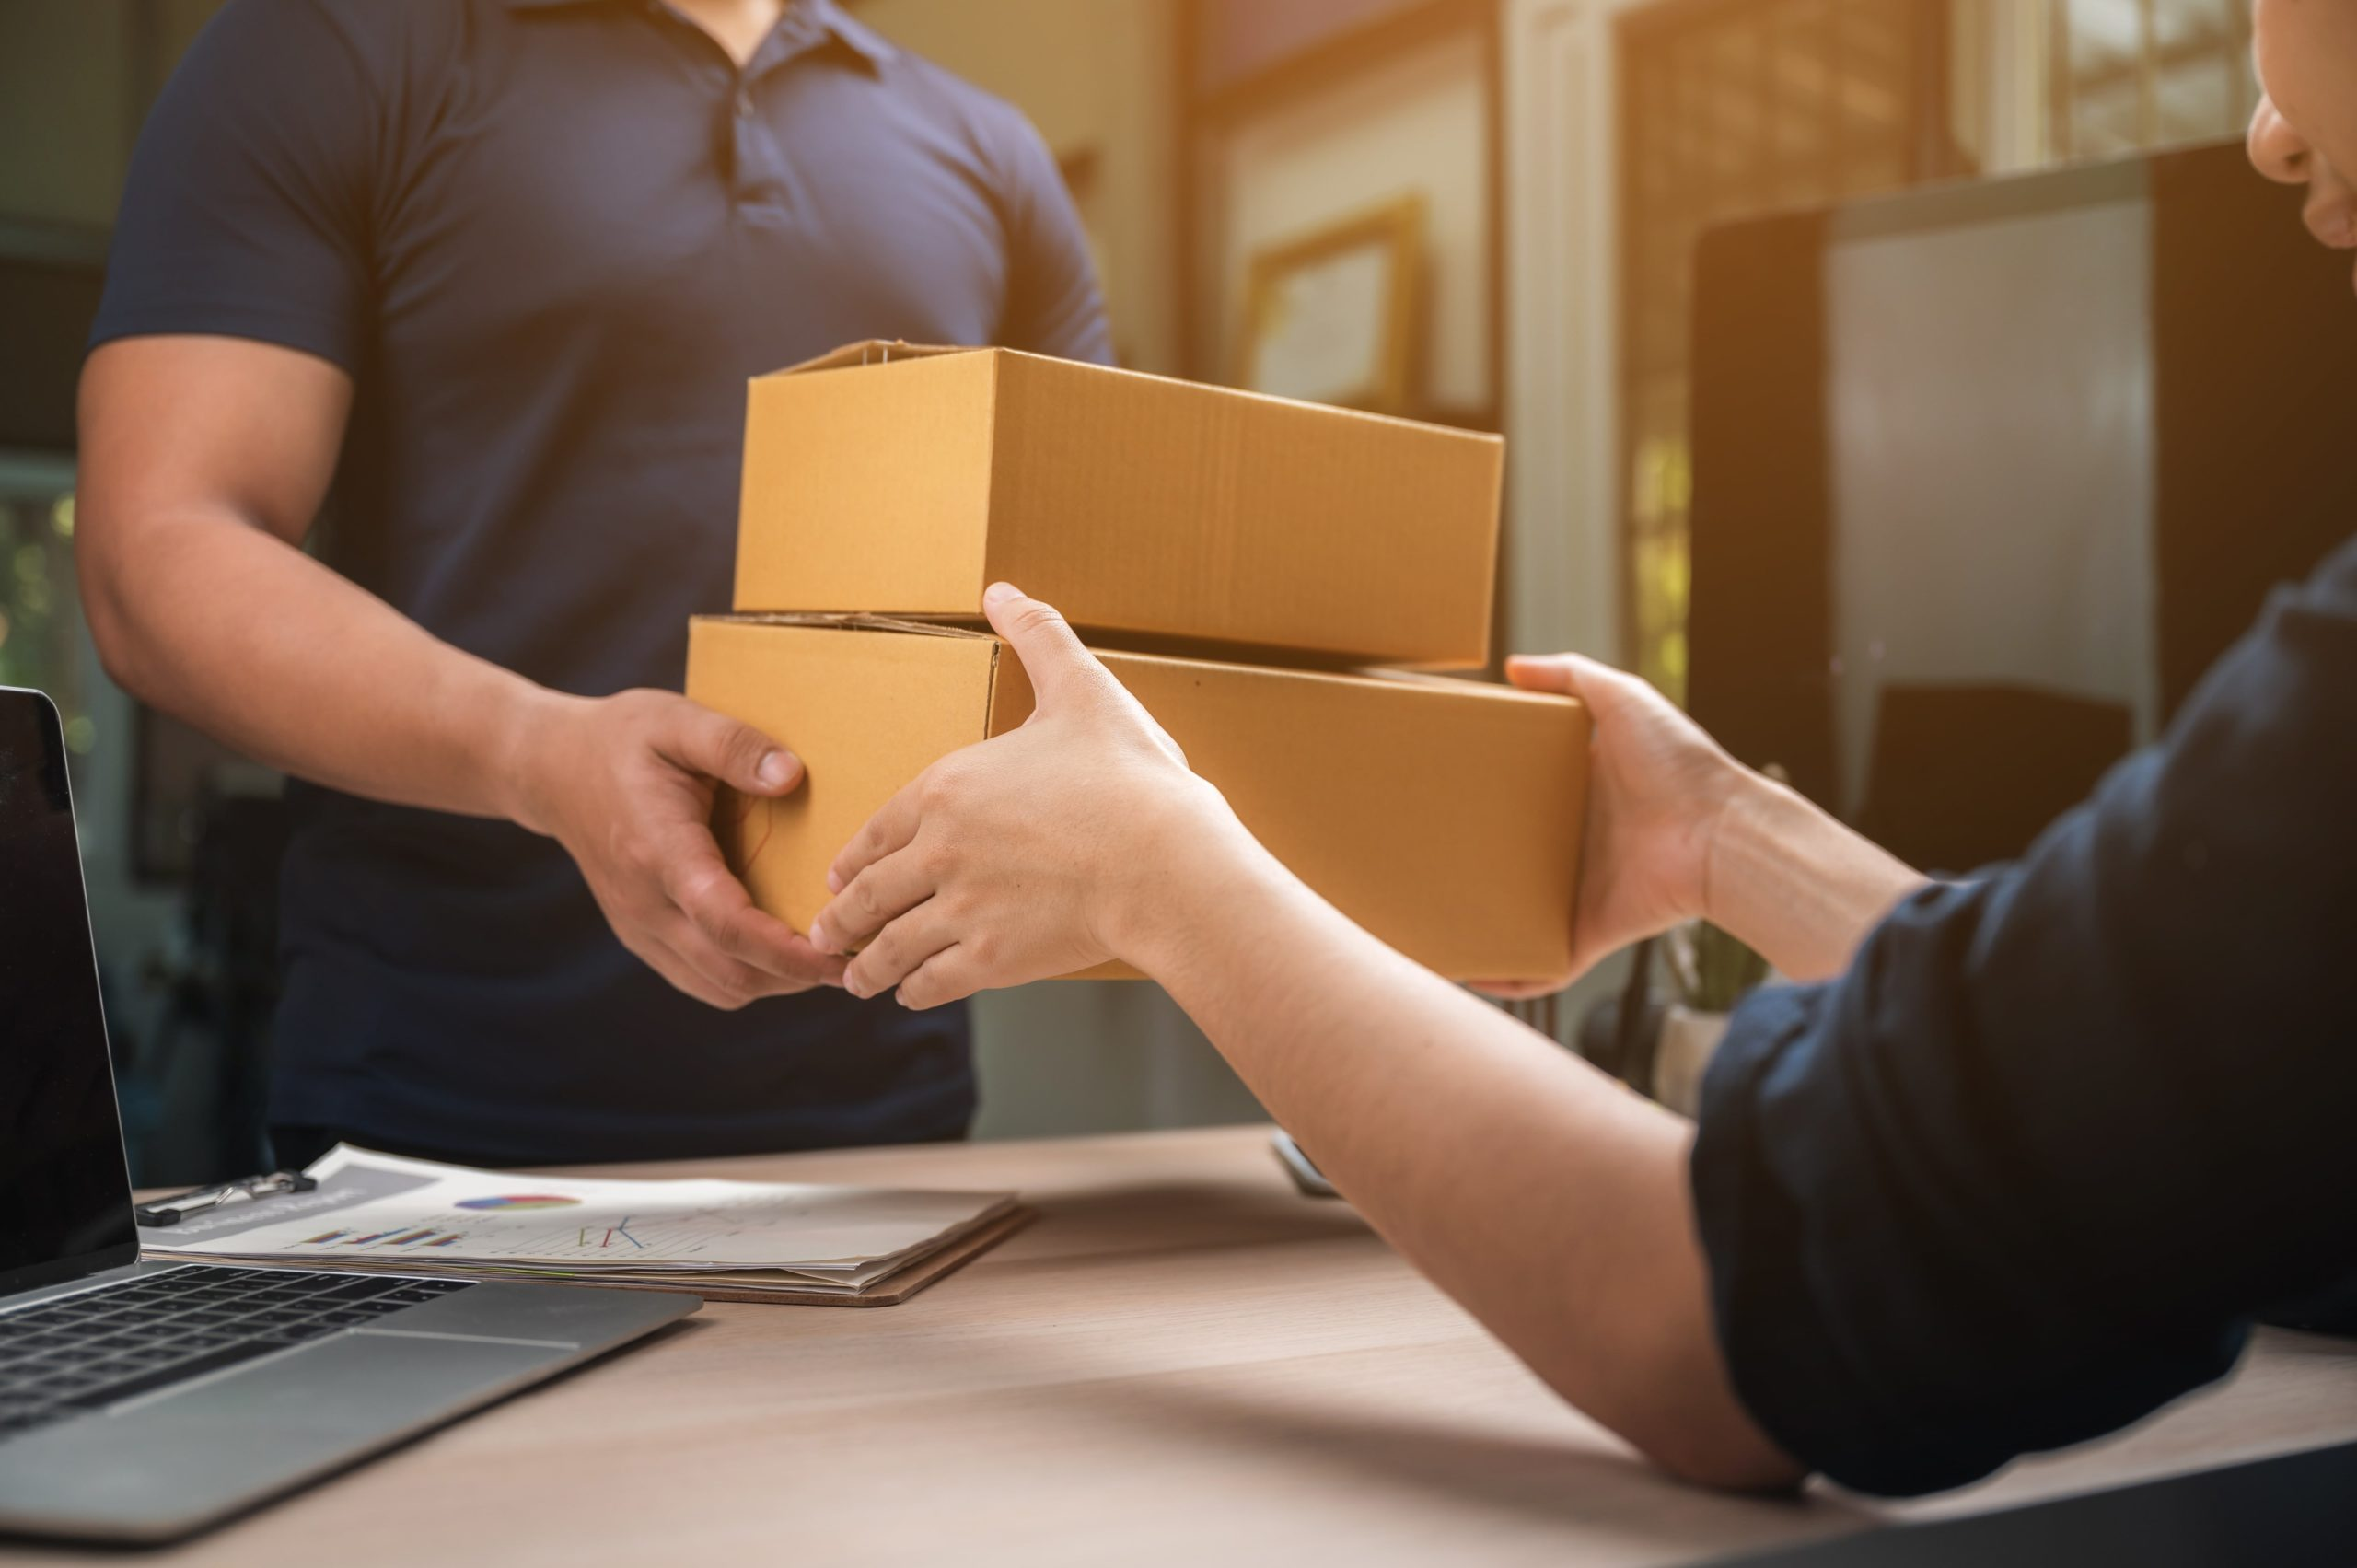 How to change the order status to delivered in Shopify